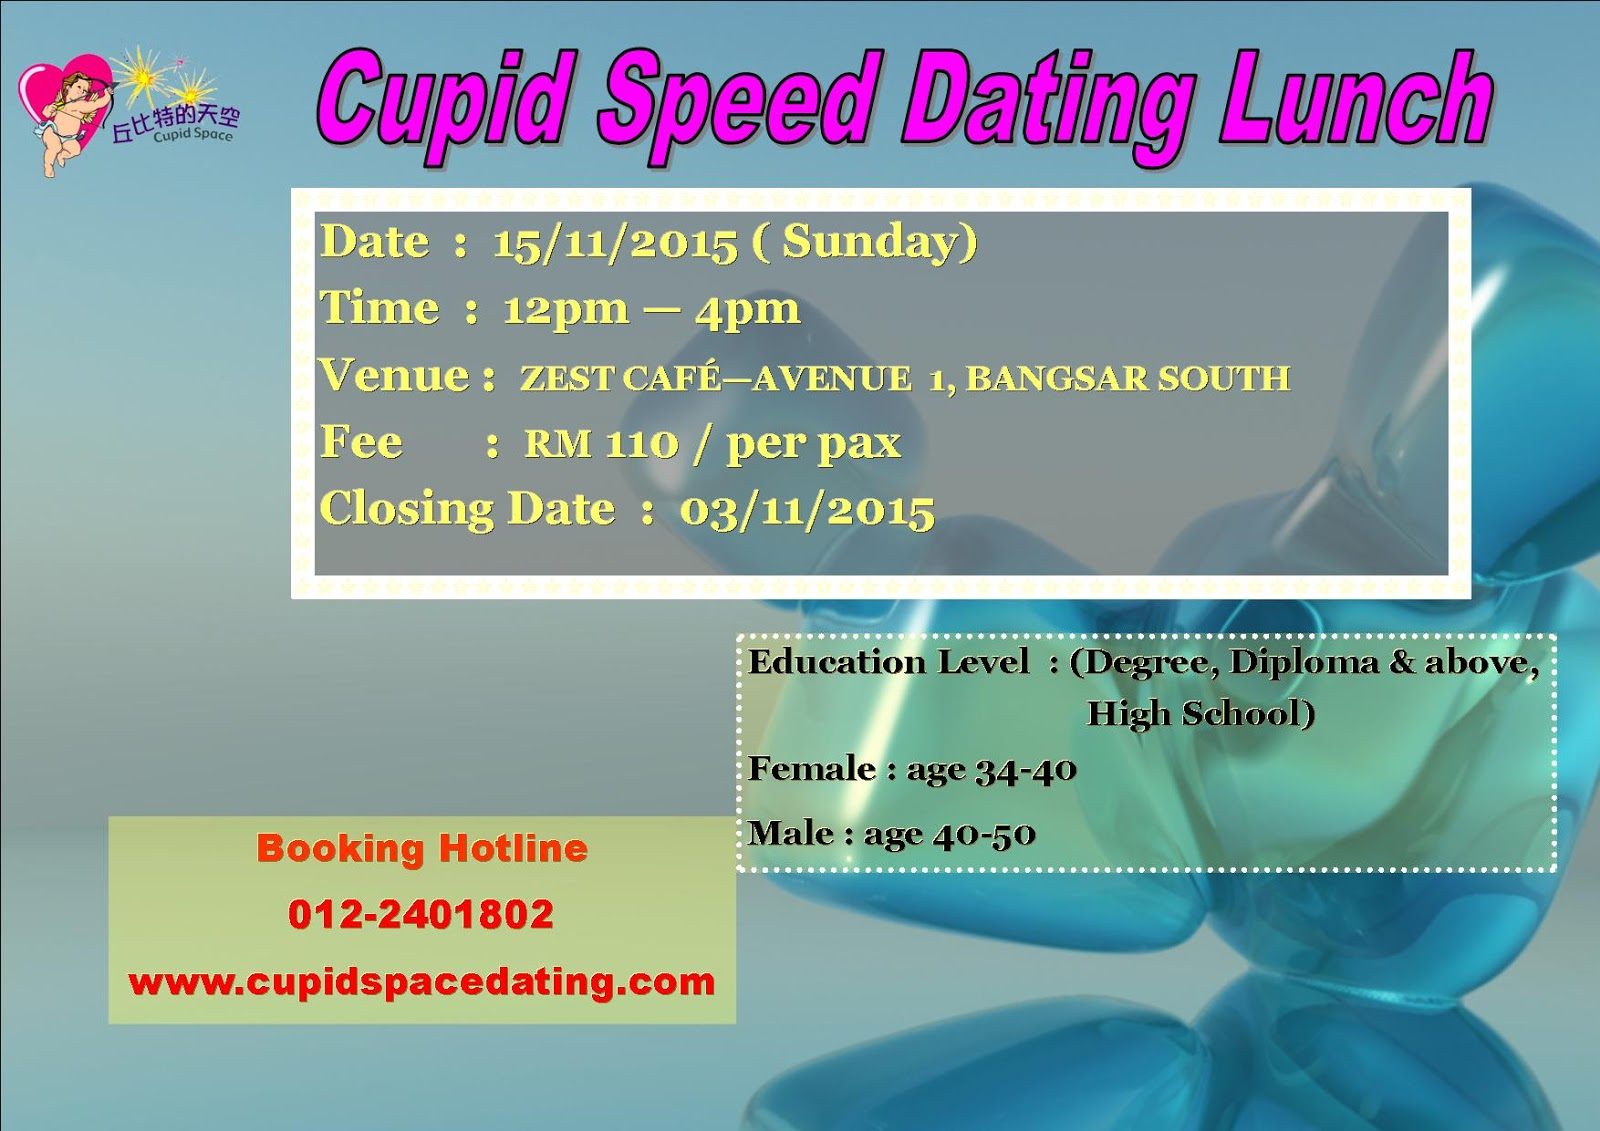 """cupid space speed dating Cupid space speed dating lakeside party 2016"""" is around the corner, on 18/12/2016, cupid space wanita mca is organizing our yearly biggest singles party for malaysian chinese, who are legally single."""